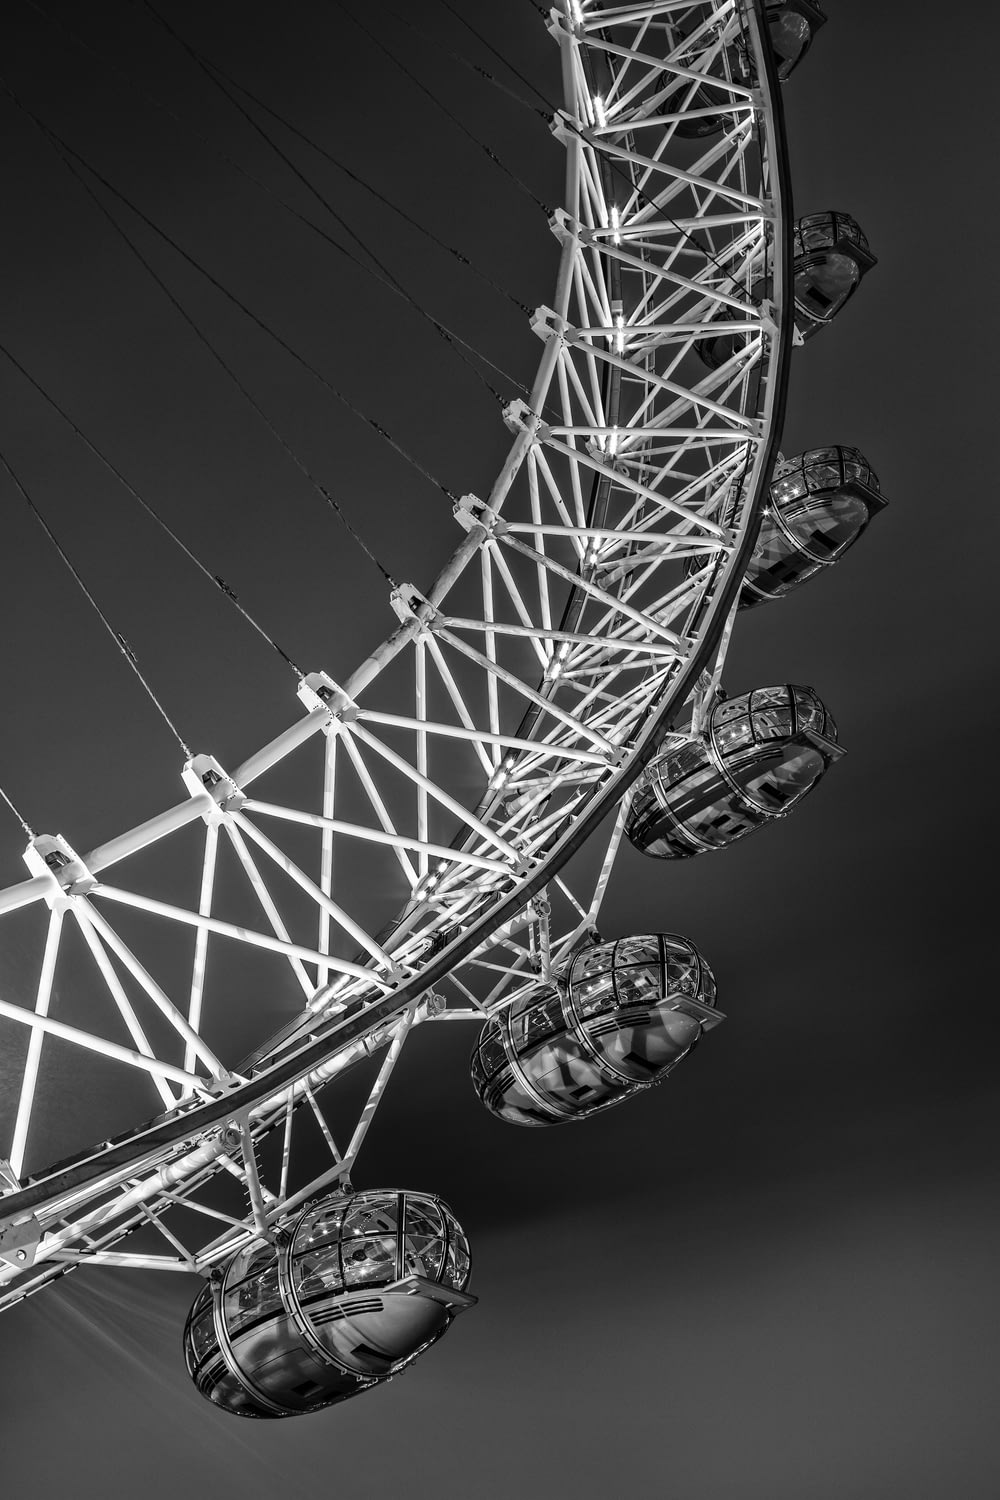 grayscale photo of ferris wheel